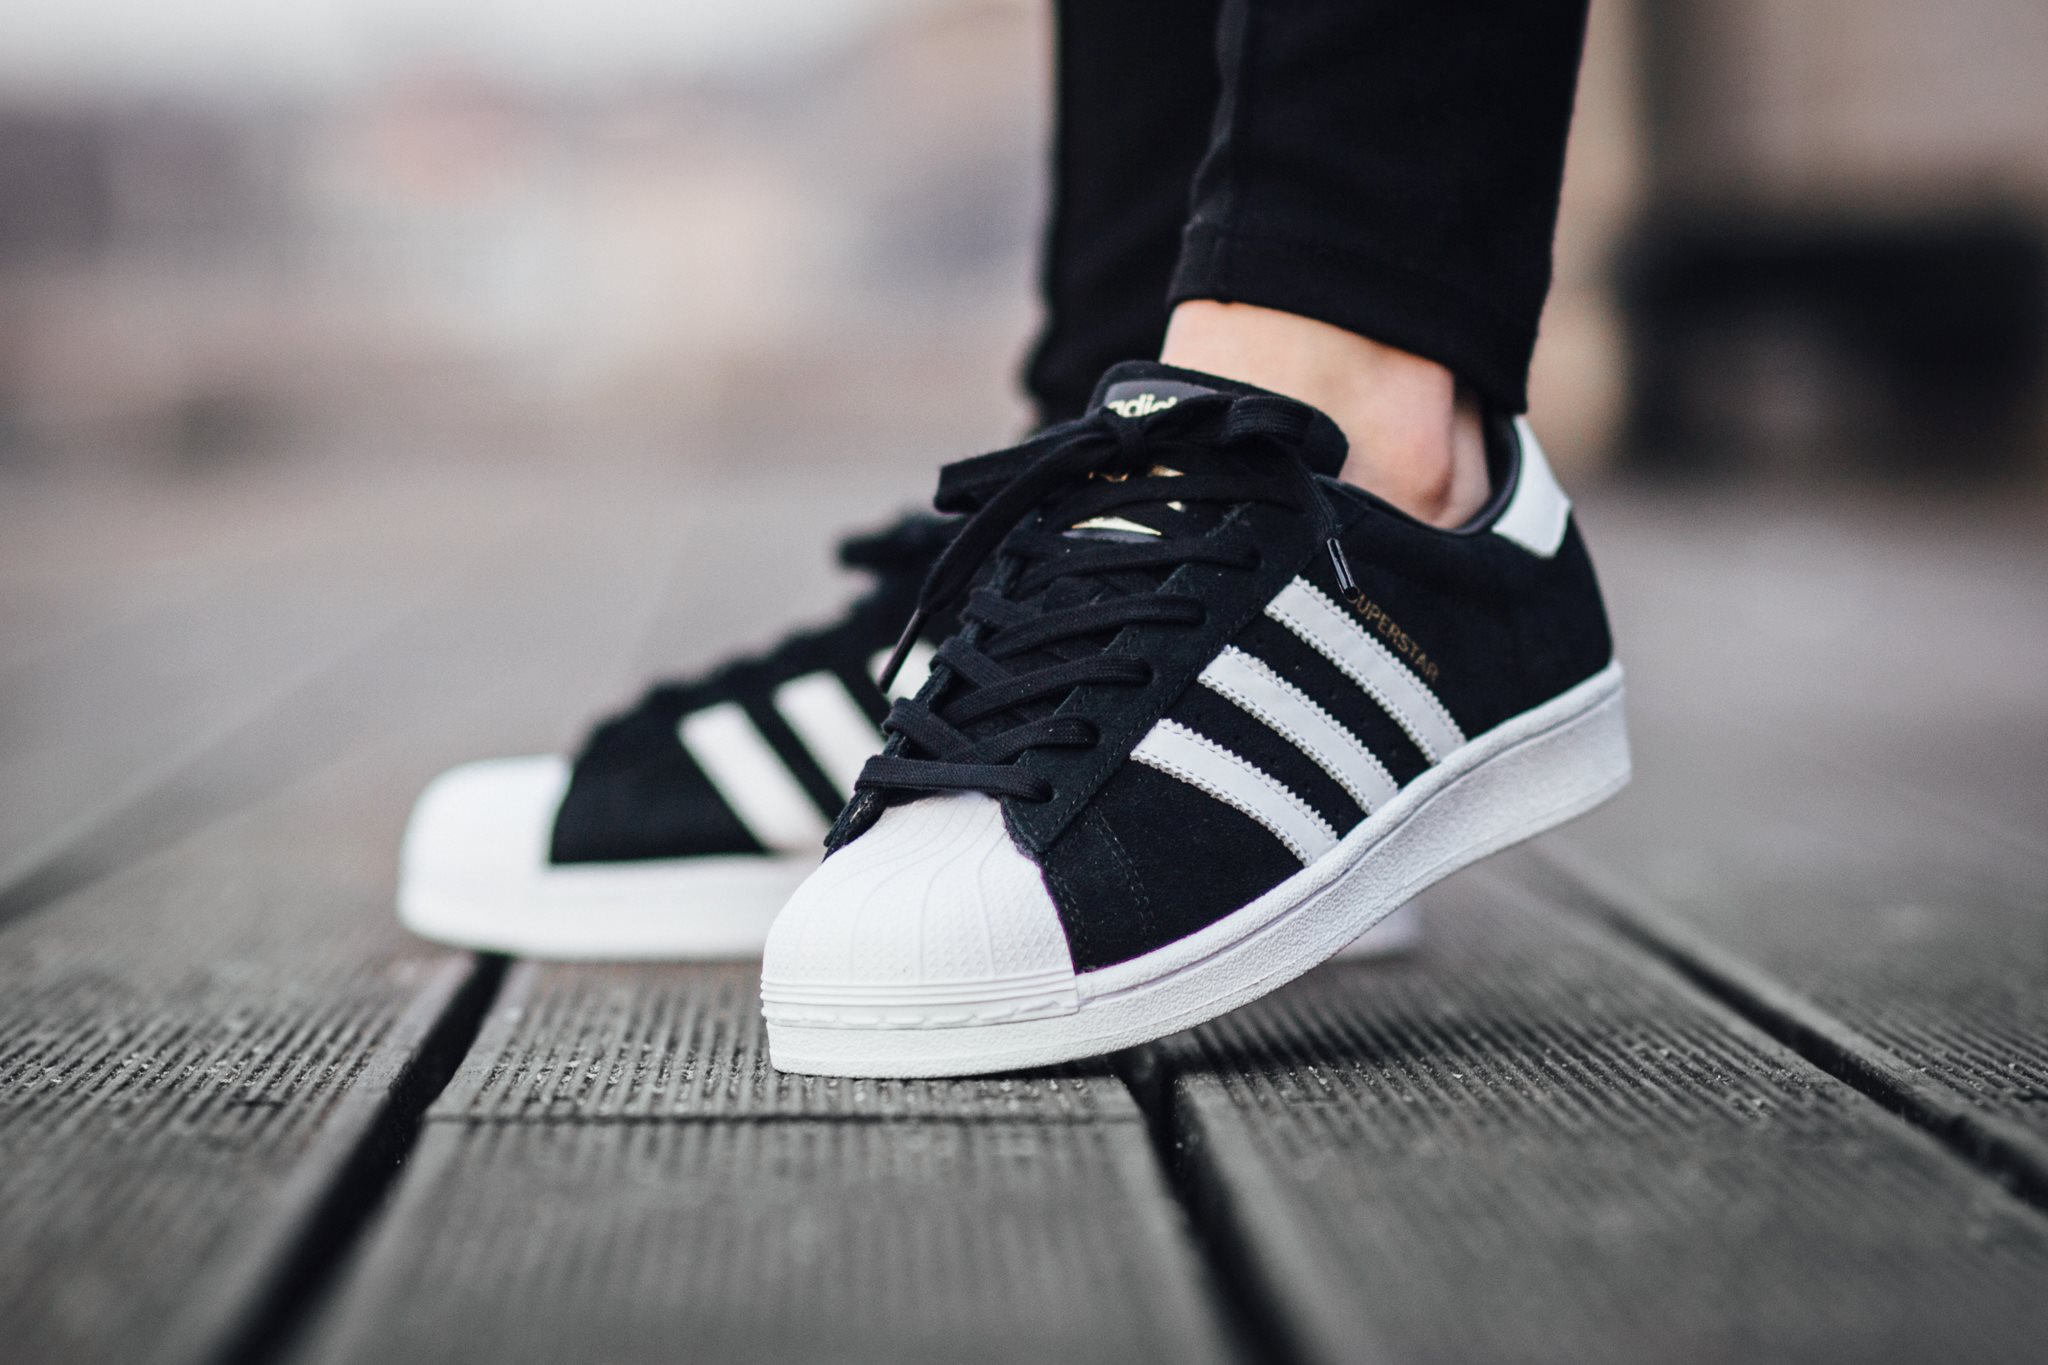 Best Price For Adidas Superstar Shoes